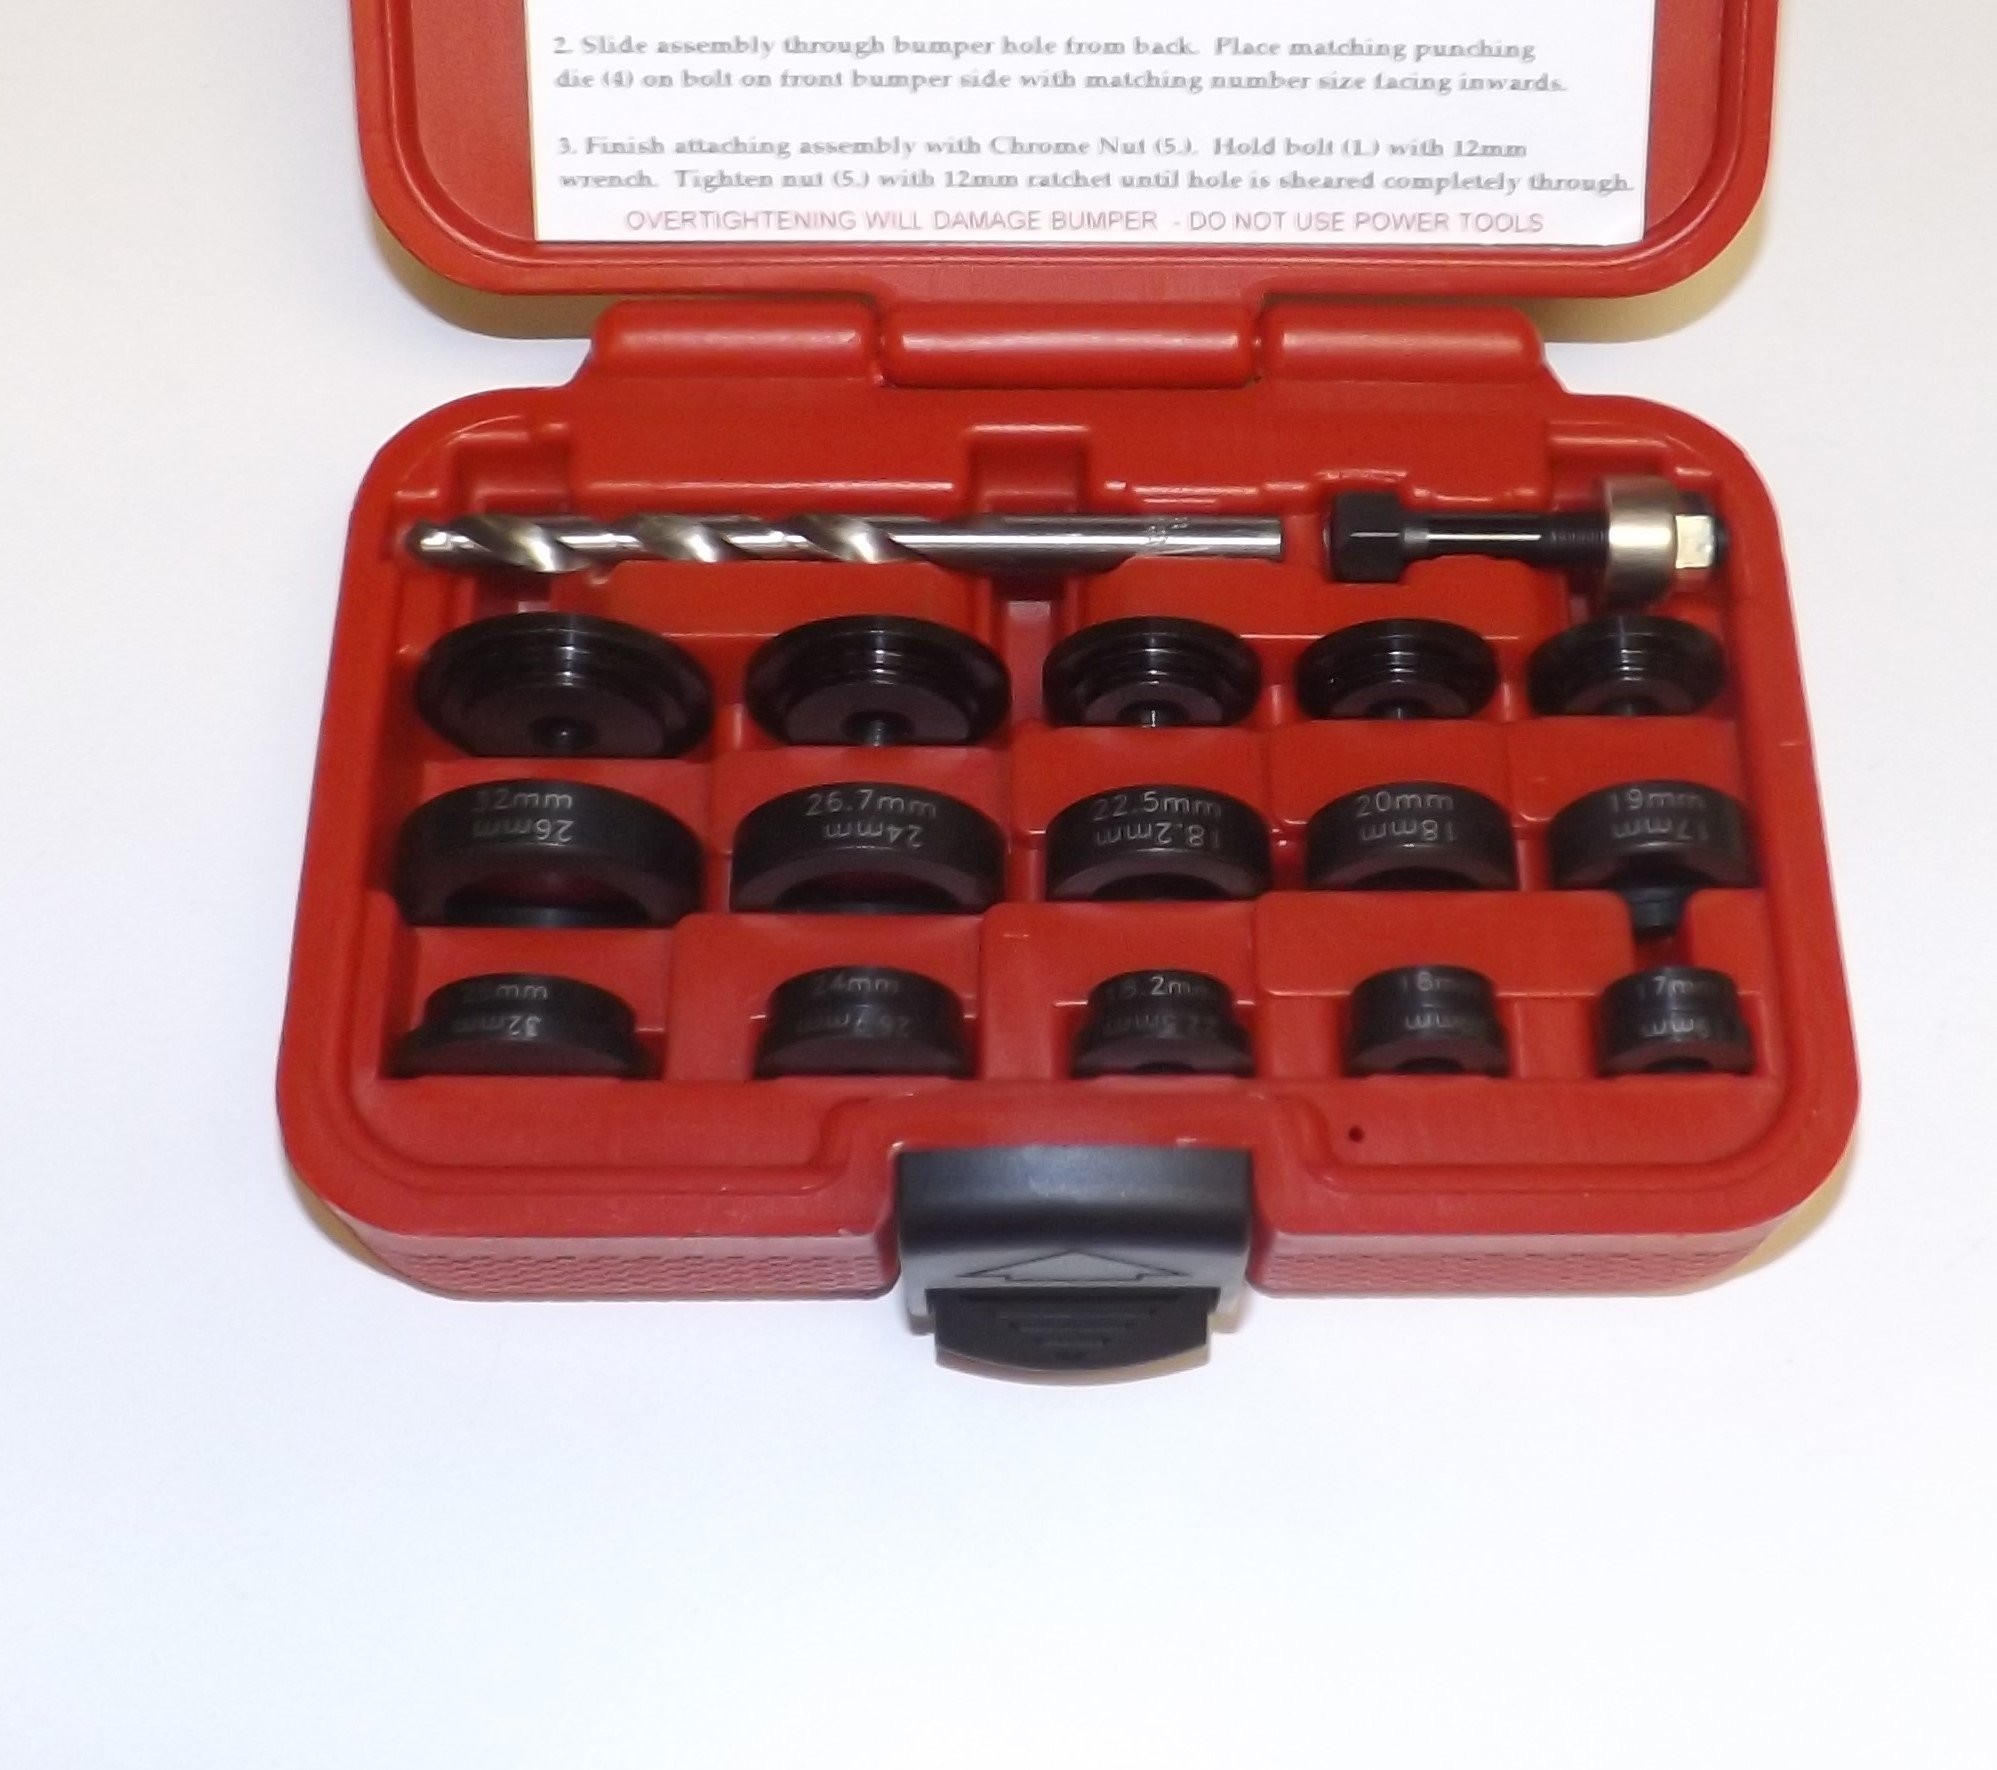 Perfect Hole punch kit for parking sensors with 10 Different Sizes for Domestic and Import: 17mm, 18mm, 18.2mm, 19mm, 20mm, 22.5mm, 24mm, 26mm, 26.7mm, 32mm by Quality Product by Killer Tools